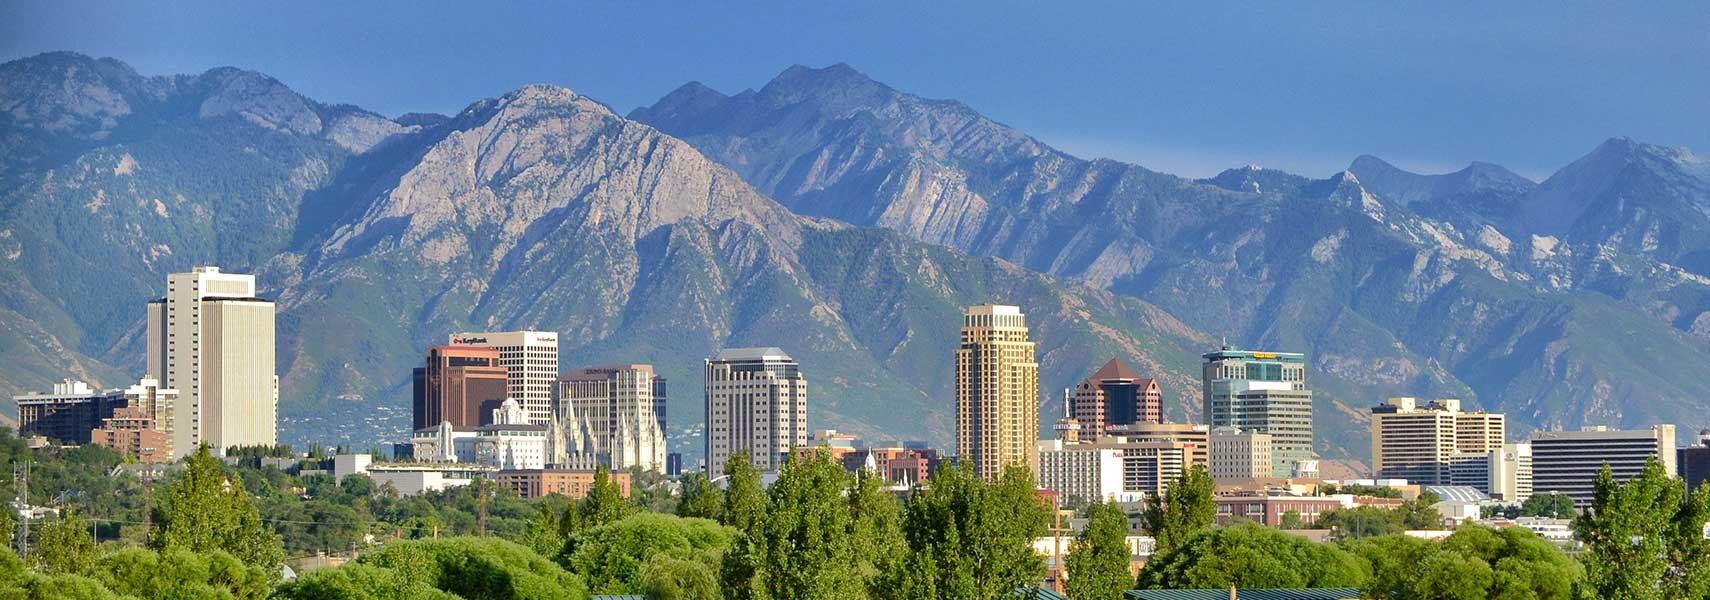 Salt Lake City On Us Map.Salt Lake City Capital Of Utah Usa Nations Online Project